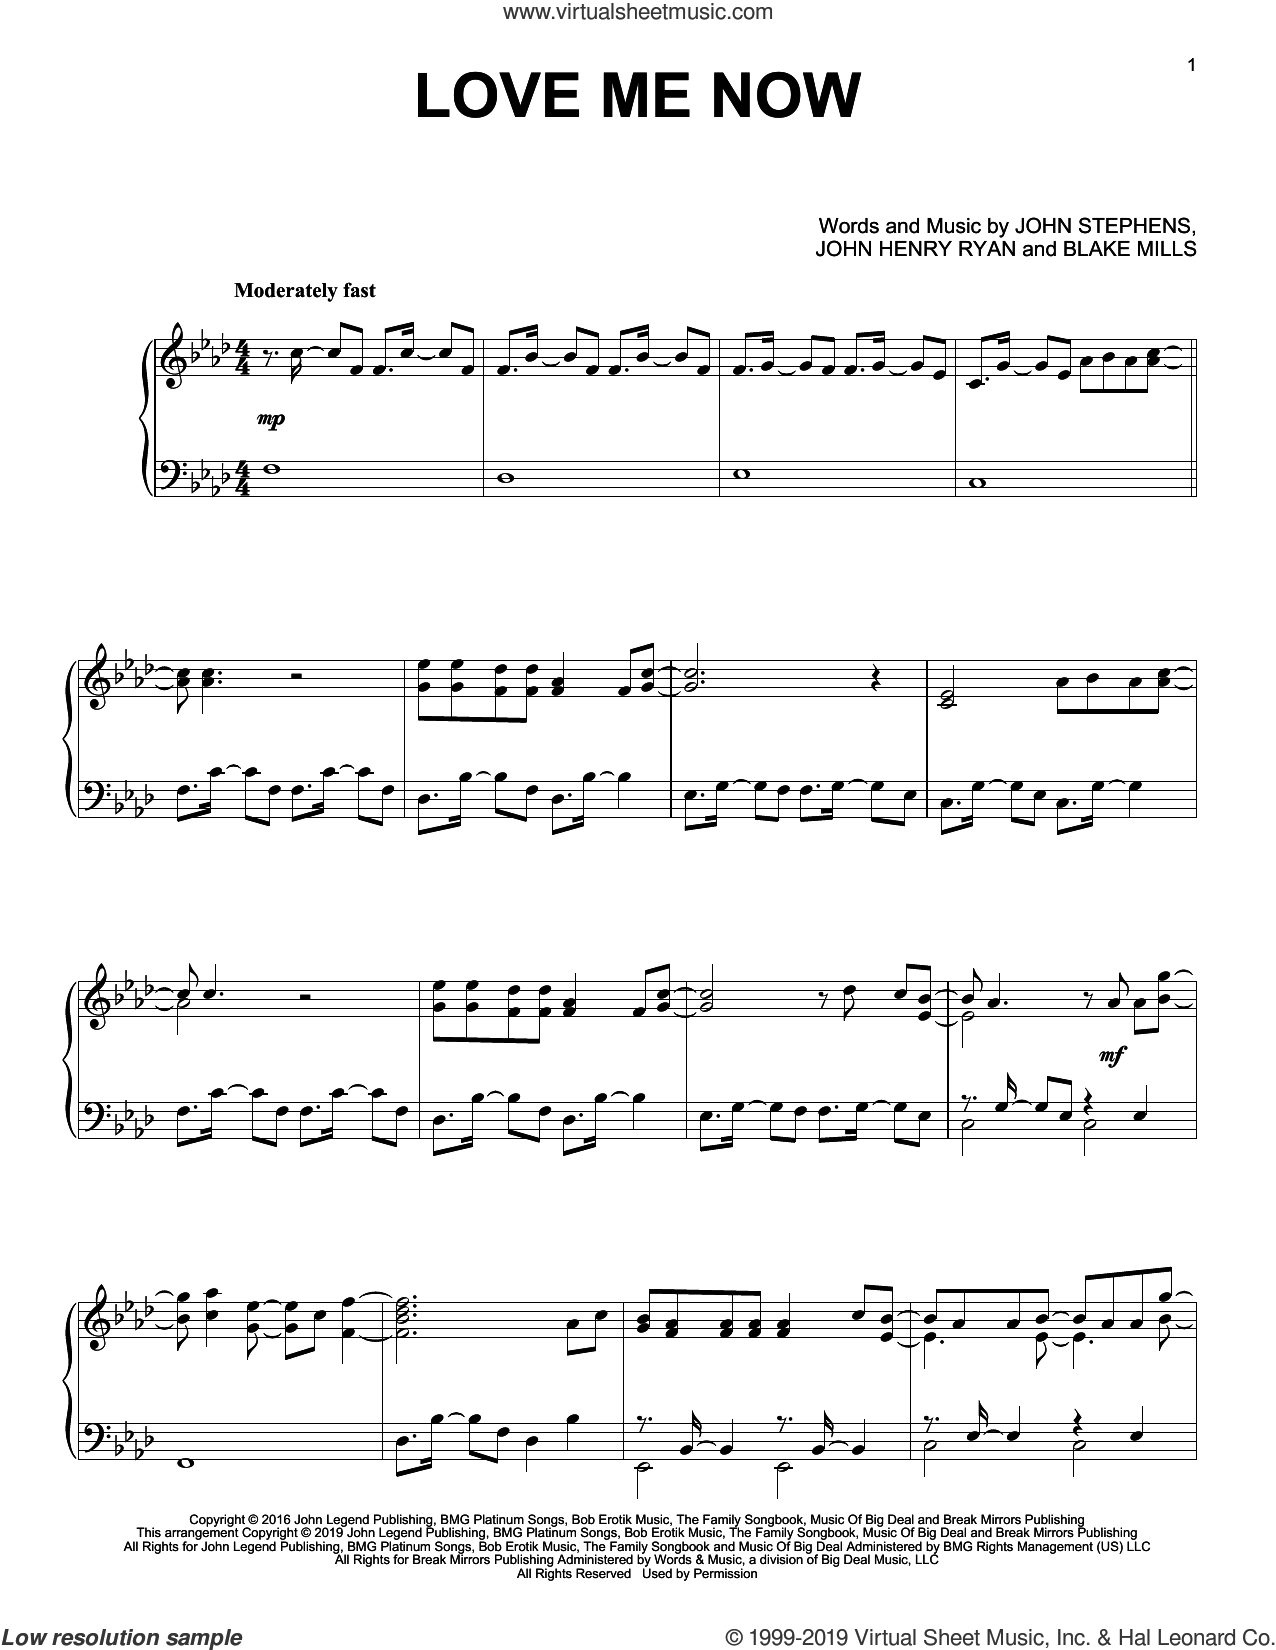 Love Me Now sheet music for piano solo by John Legend, Blake Mills, John Henry Ryan and John Stephens, intermediate skill level